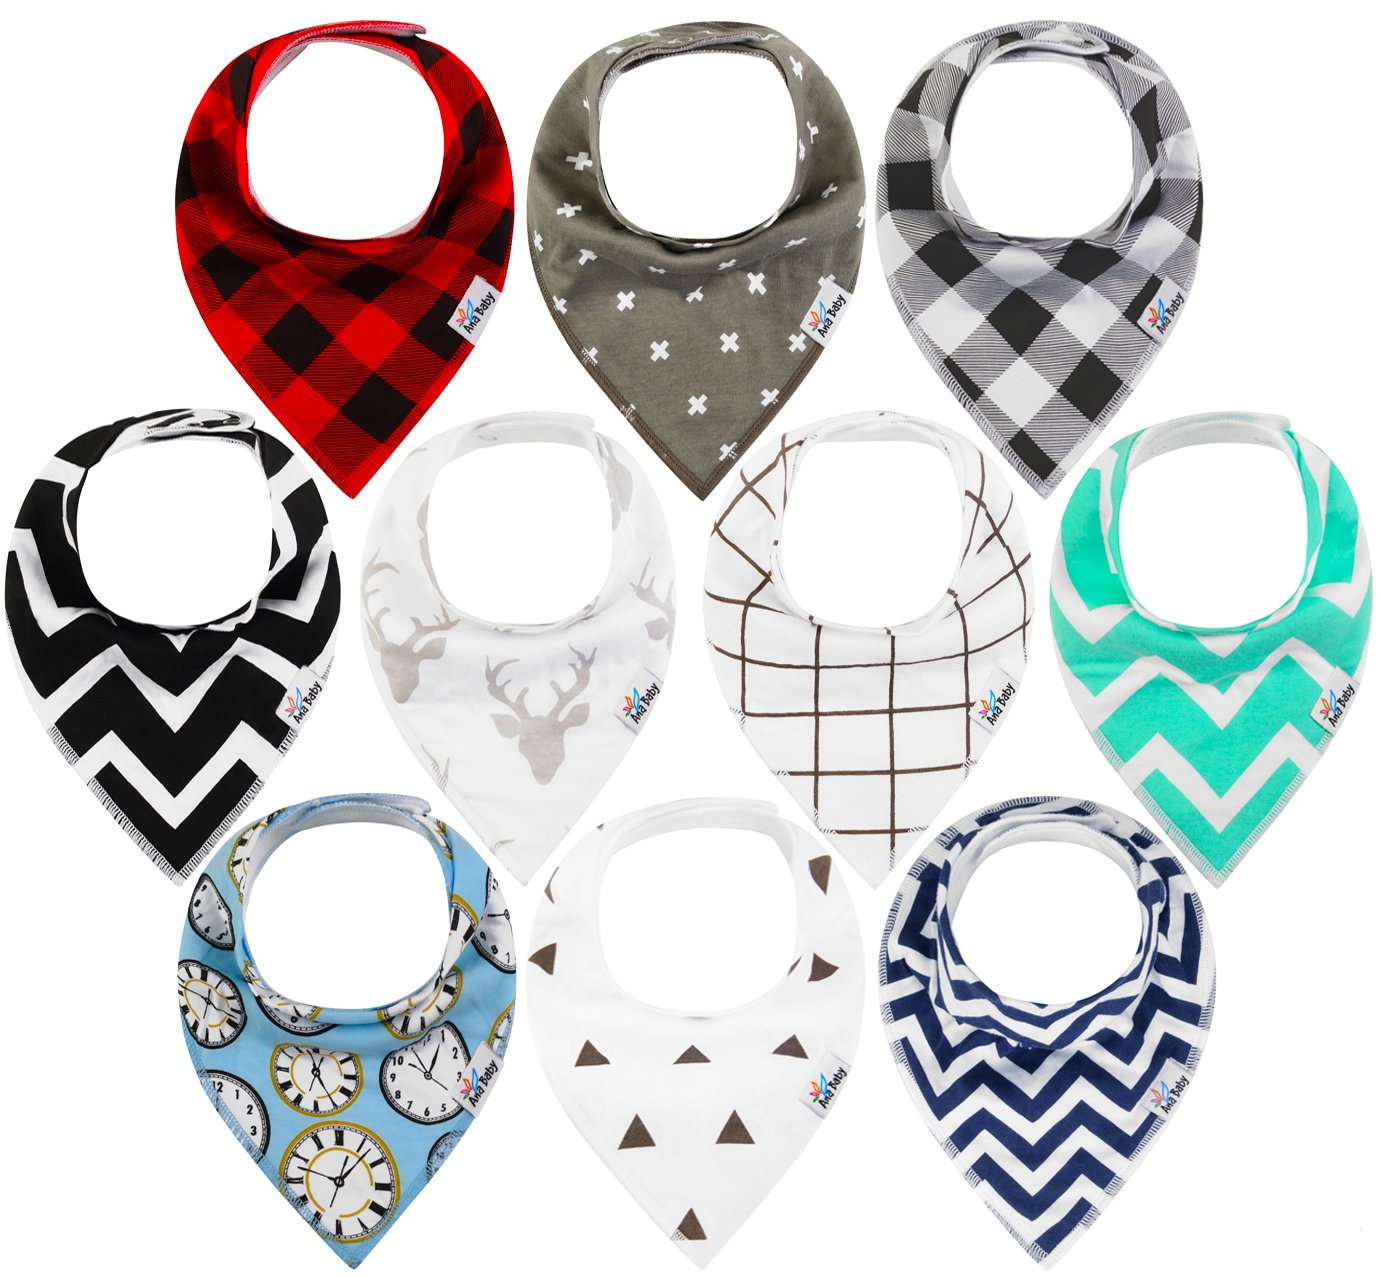 10-Pack Baby Bandana Drool Bibs for Drooling and Teething, 100% Organic Cotton, Soft and Absorbent, Hypoallergenic Unisex Bibs for Baby Boys & Girls - Baby Shower Gift Set by Ana Baby Ana premiums